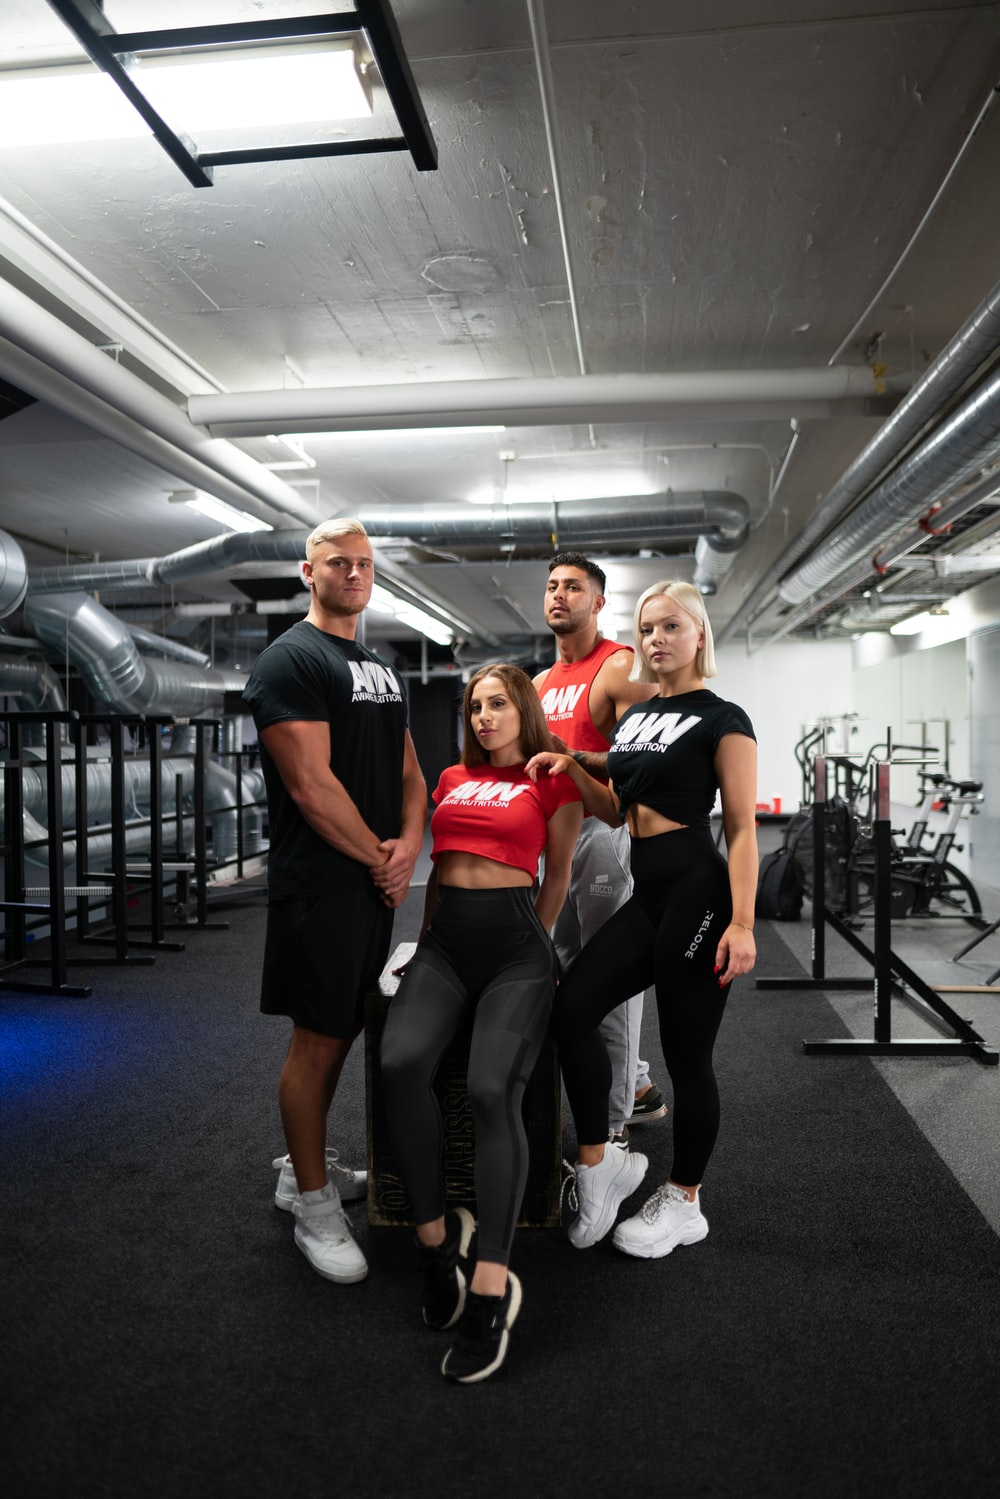 two men standing behind two women inside gym